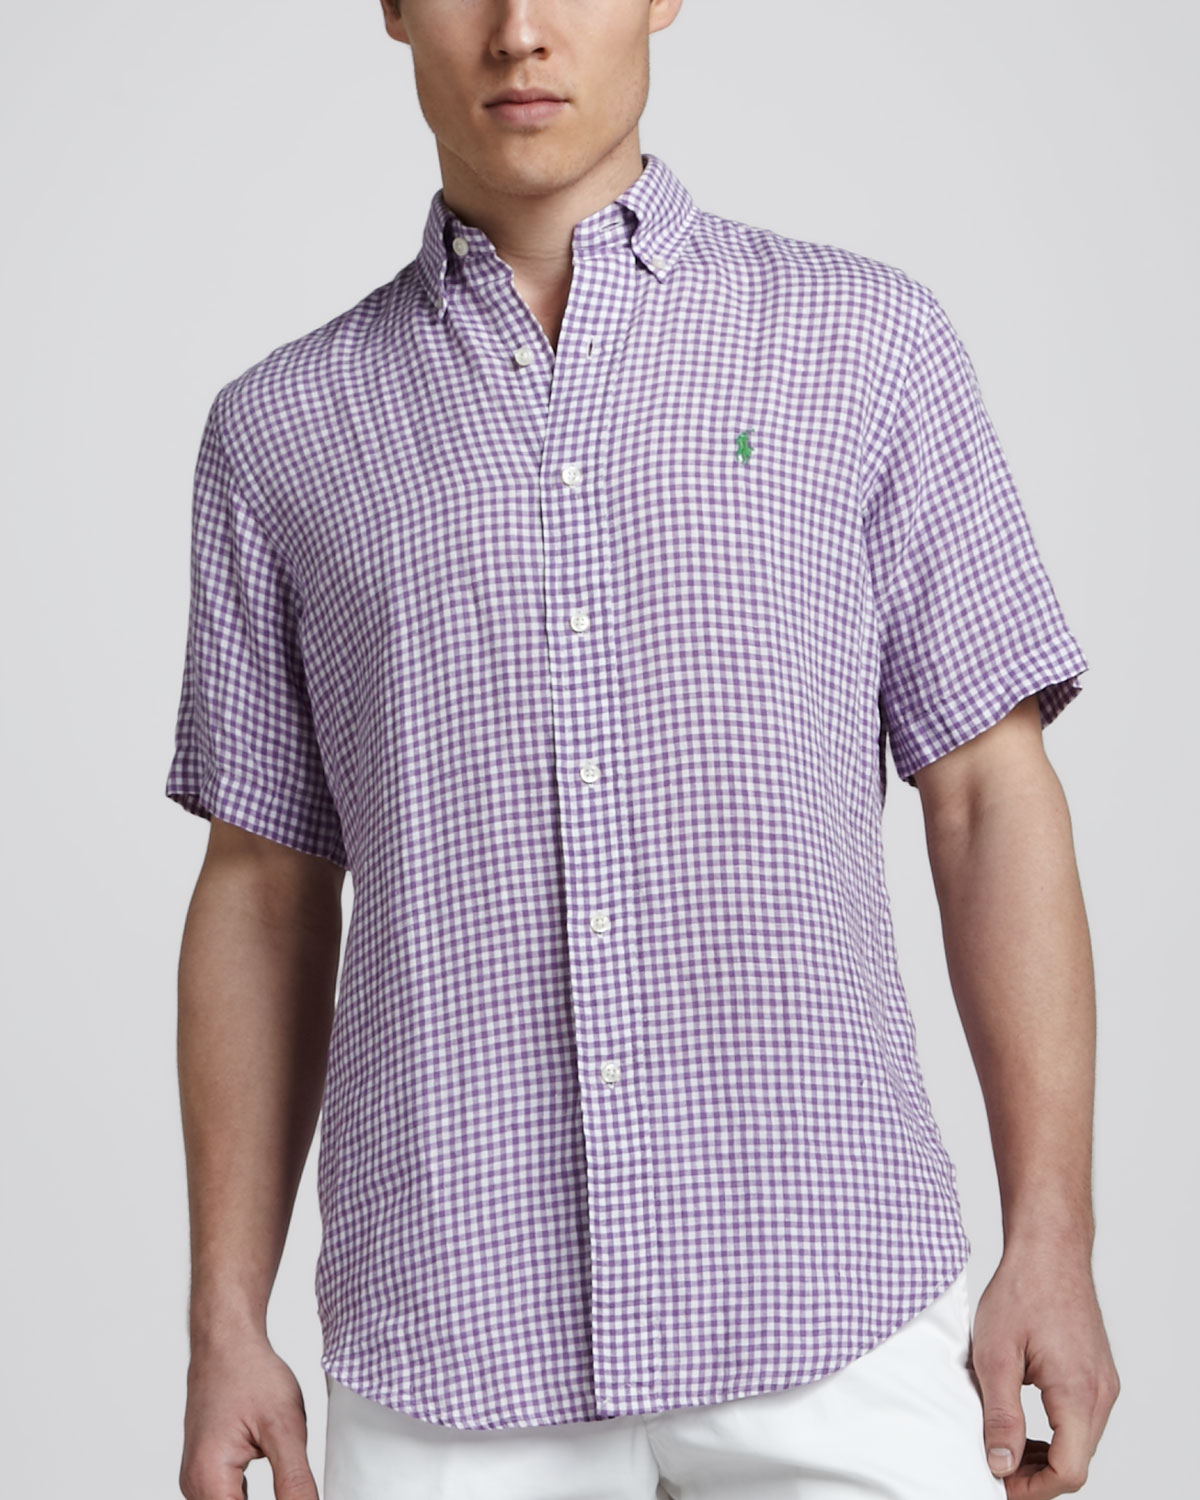 Polo ralph lauren Gingham Shortsleeve Linen Shirt Purple in Purple ...